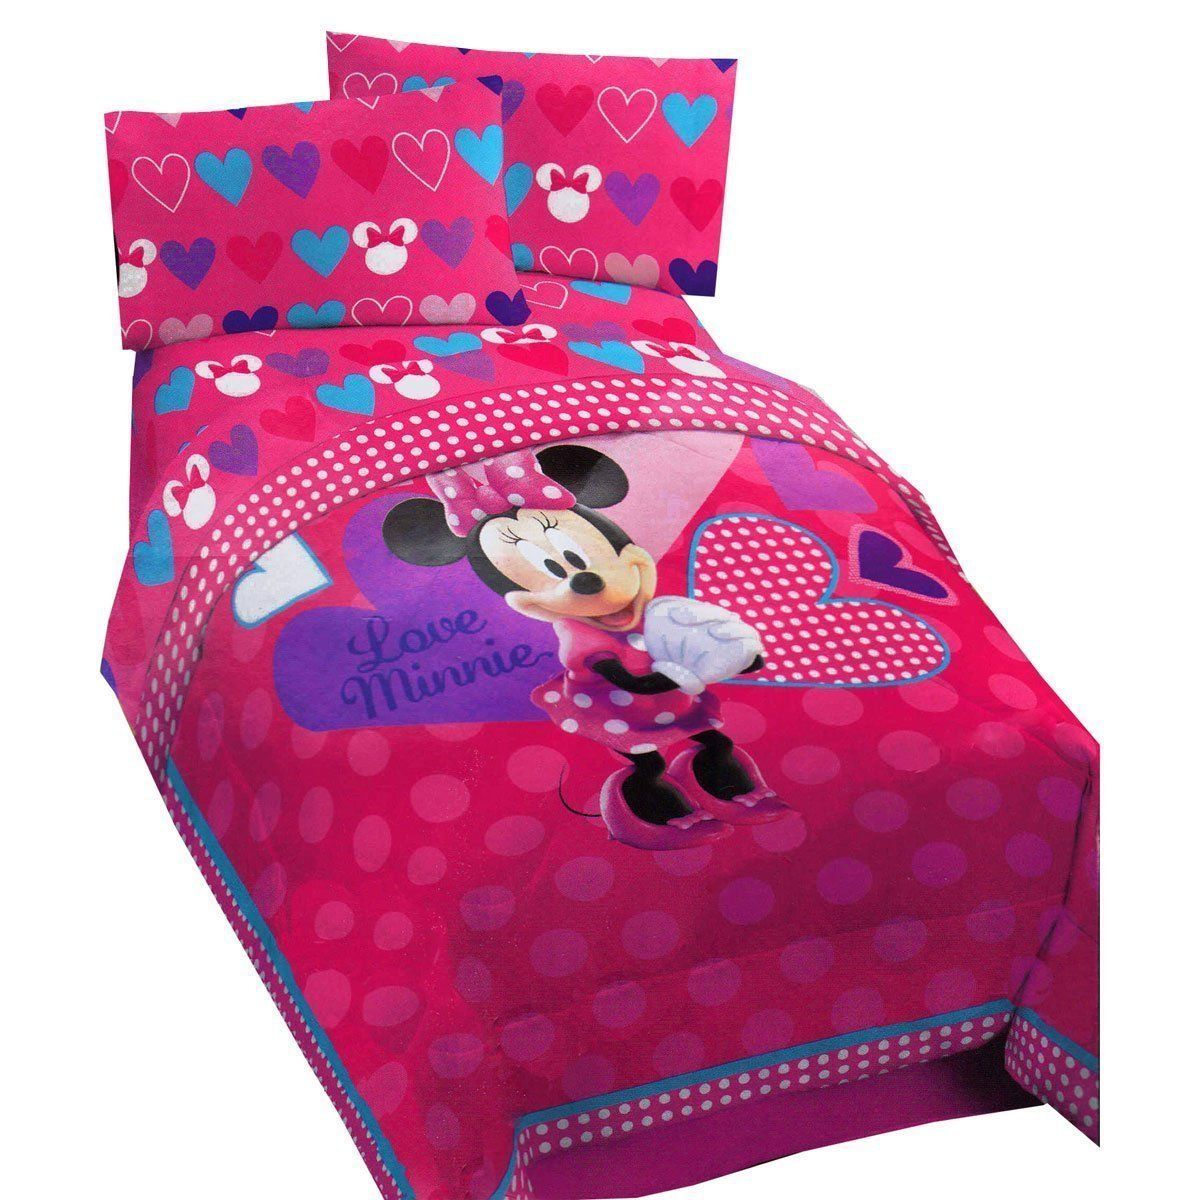 Toddler Bed Minnie Mouse Comforter